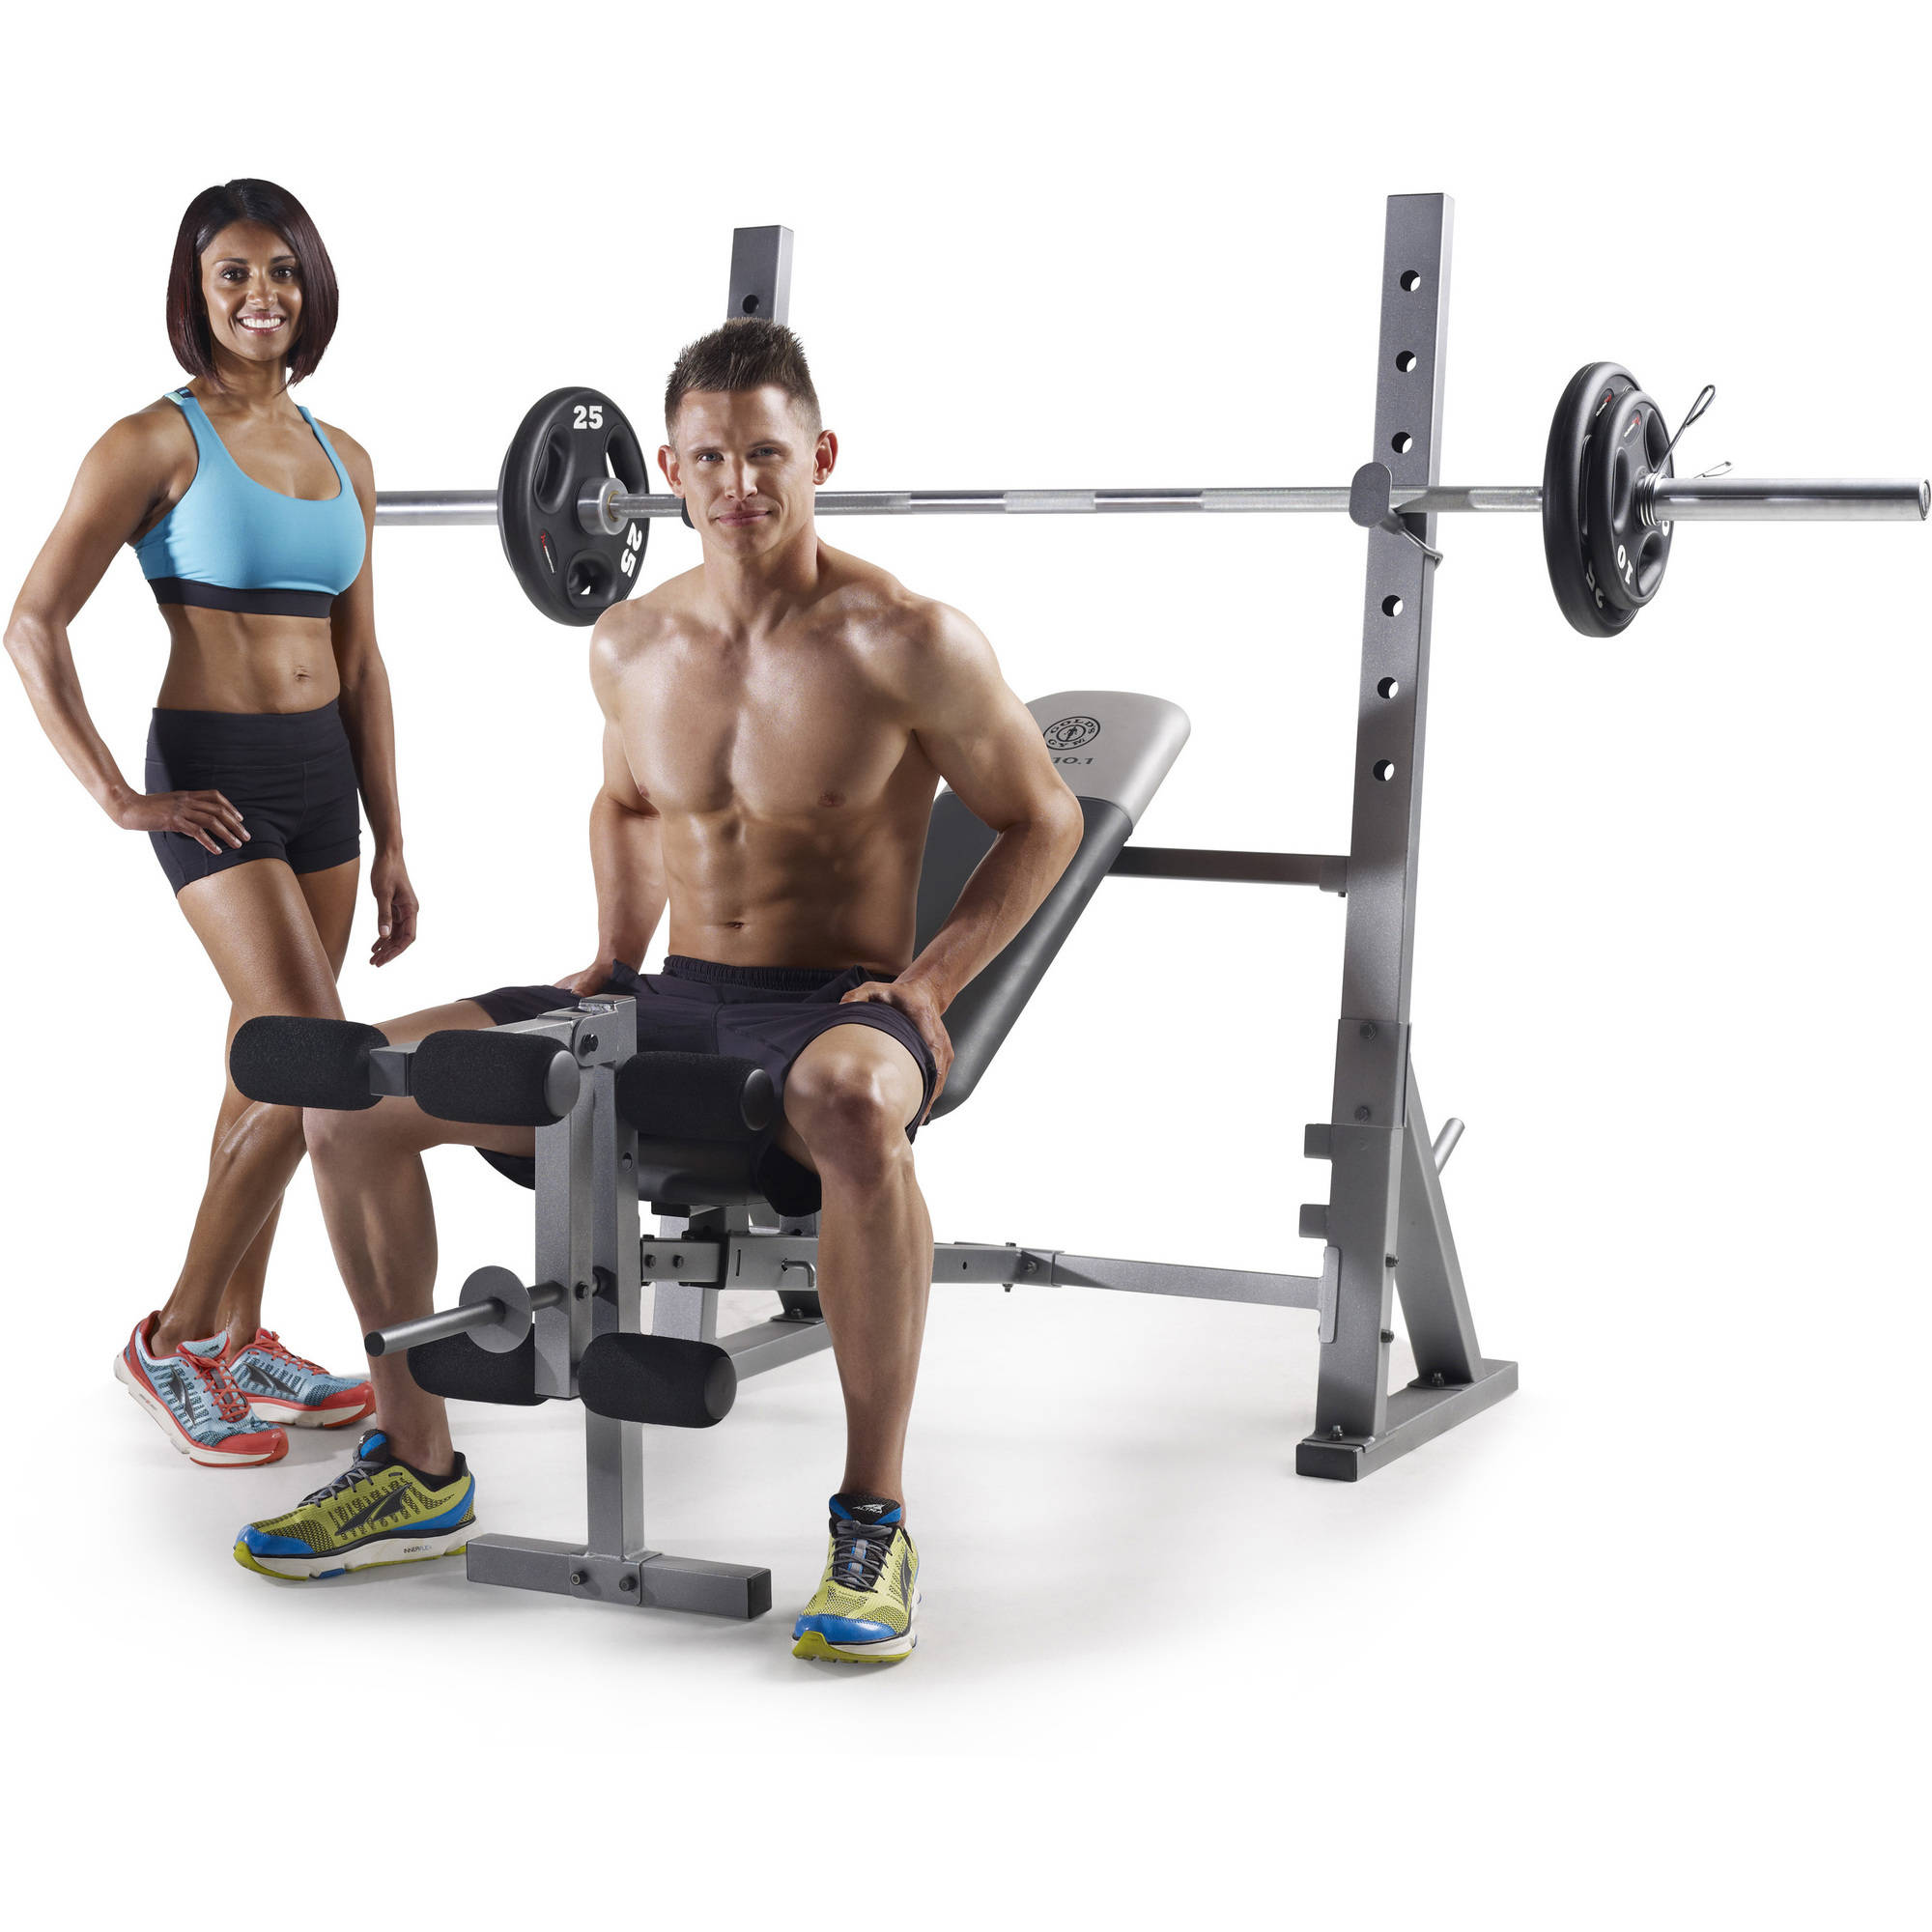 Gold 39 S Gym Xr 10 1 Olympic Weight Bench By Icon Health And Fitness Inc